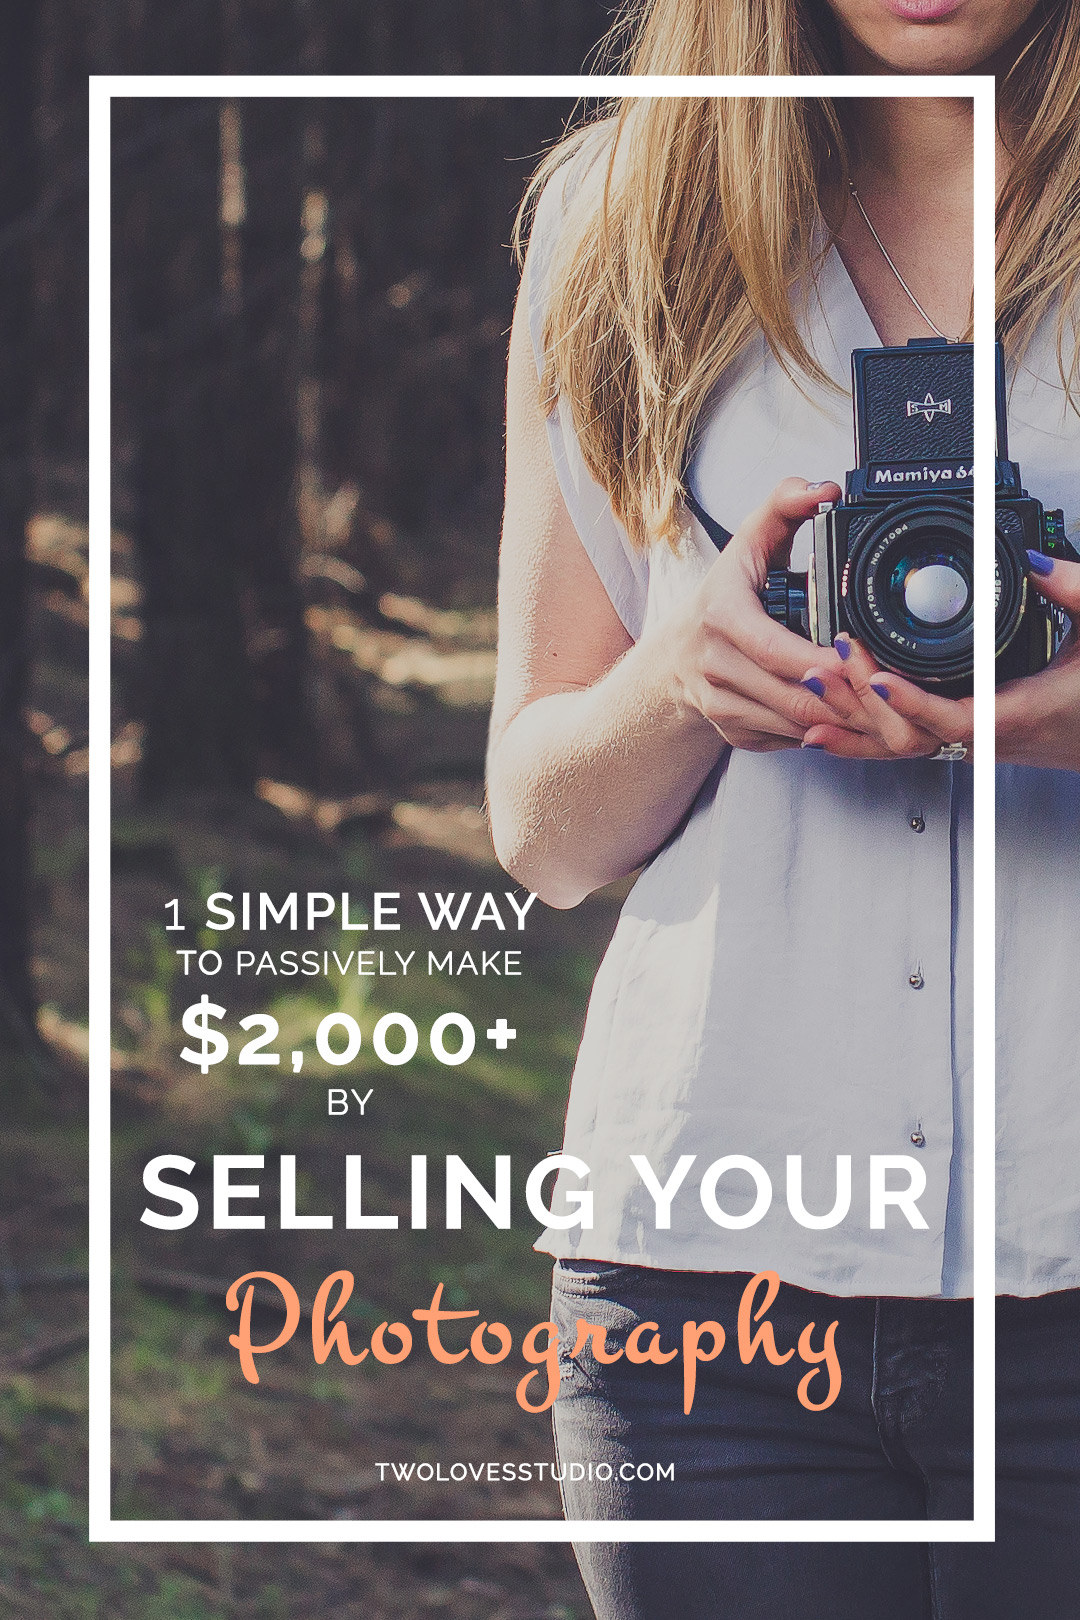 1 Simple Way To Passive Make $2,000+ by Selling Your Photography | Want to make money by selling your photography by doing nothing? There is just one simple thing I do that sees me passively make over $2,000 a year. Click to get the easiest tip you'll ever read.